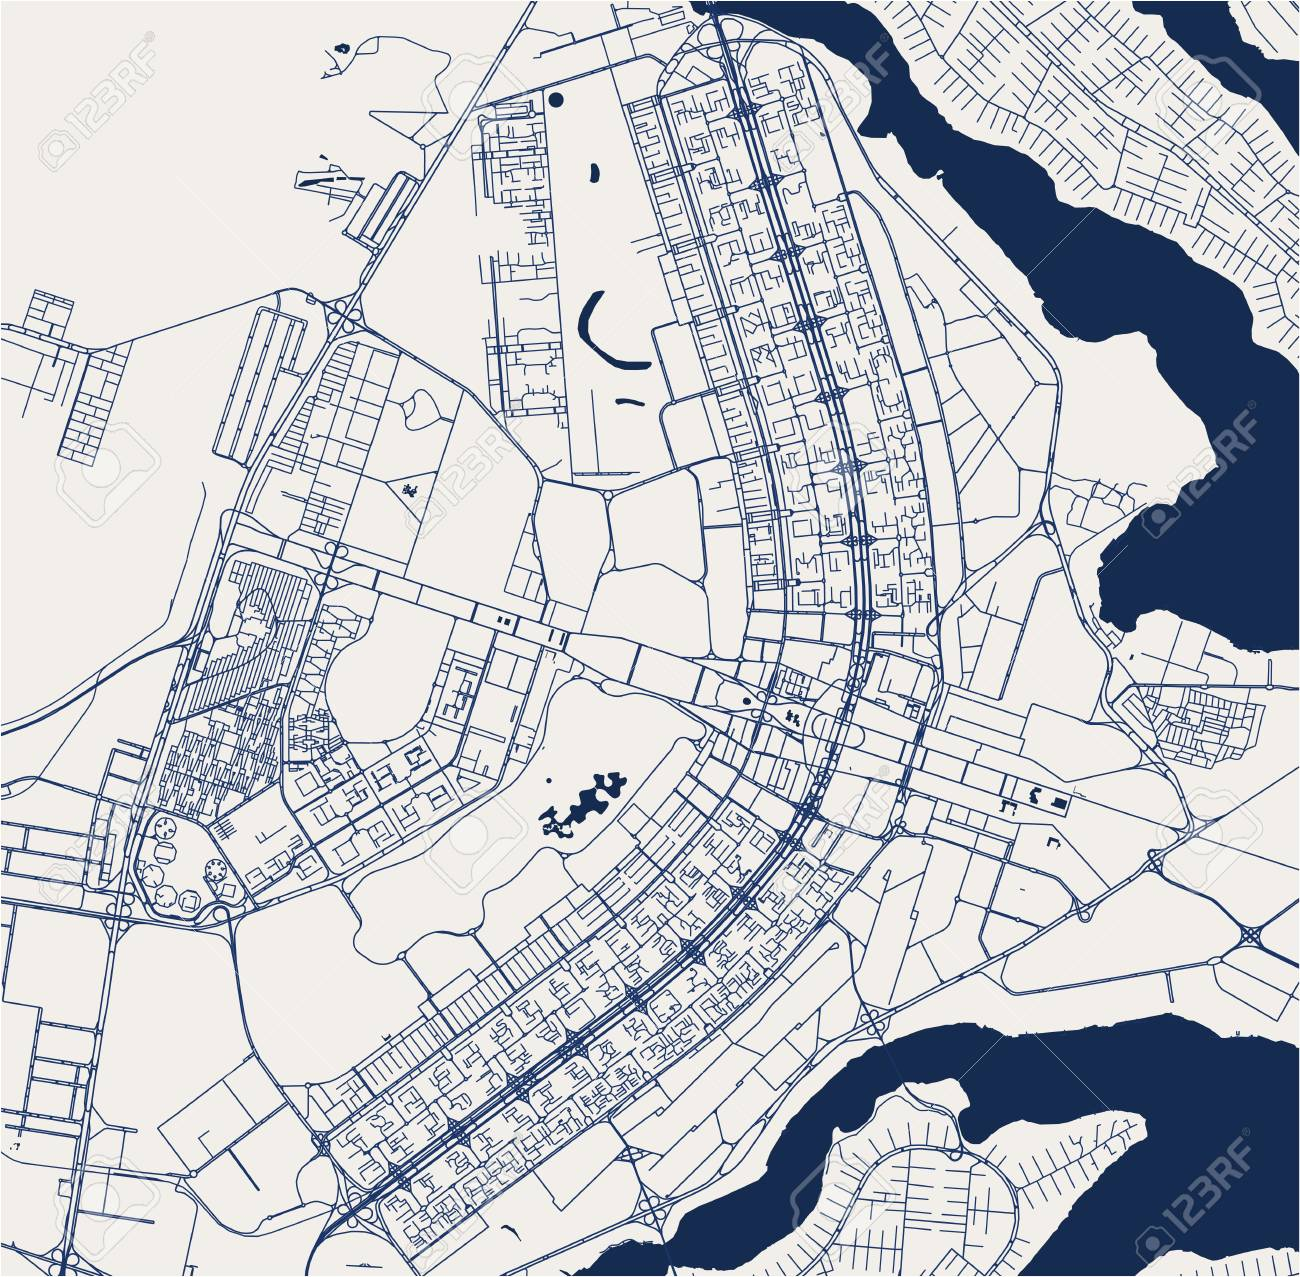 Vector Map Of The City Of Brasilia Capital Of Brazil Royalty Free Cliparts Vectors And Stock Illustration Image 126772403